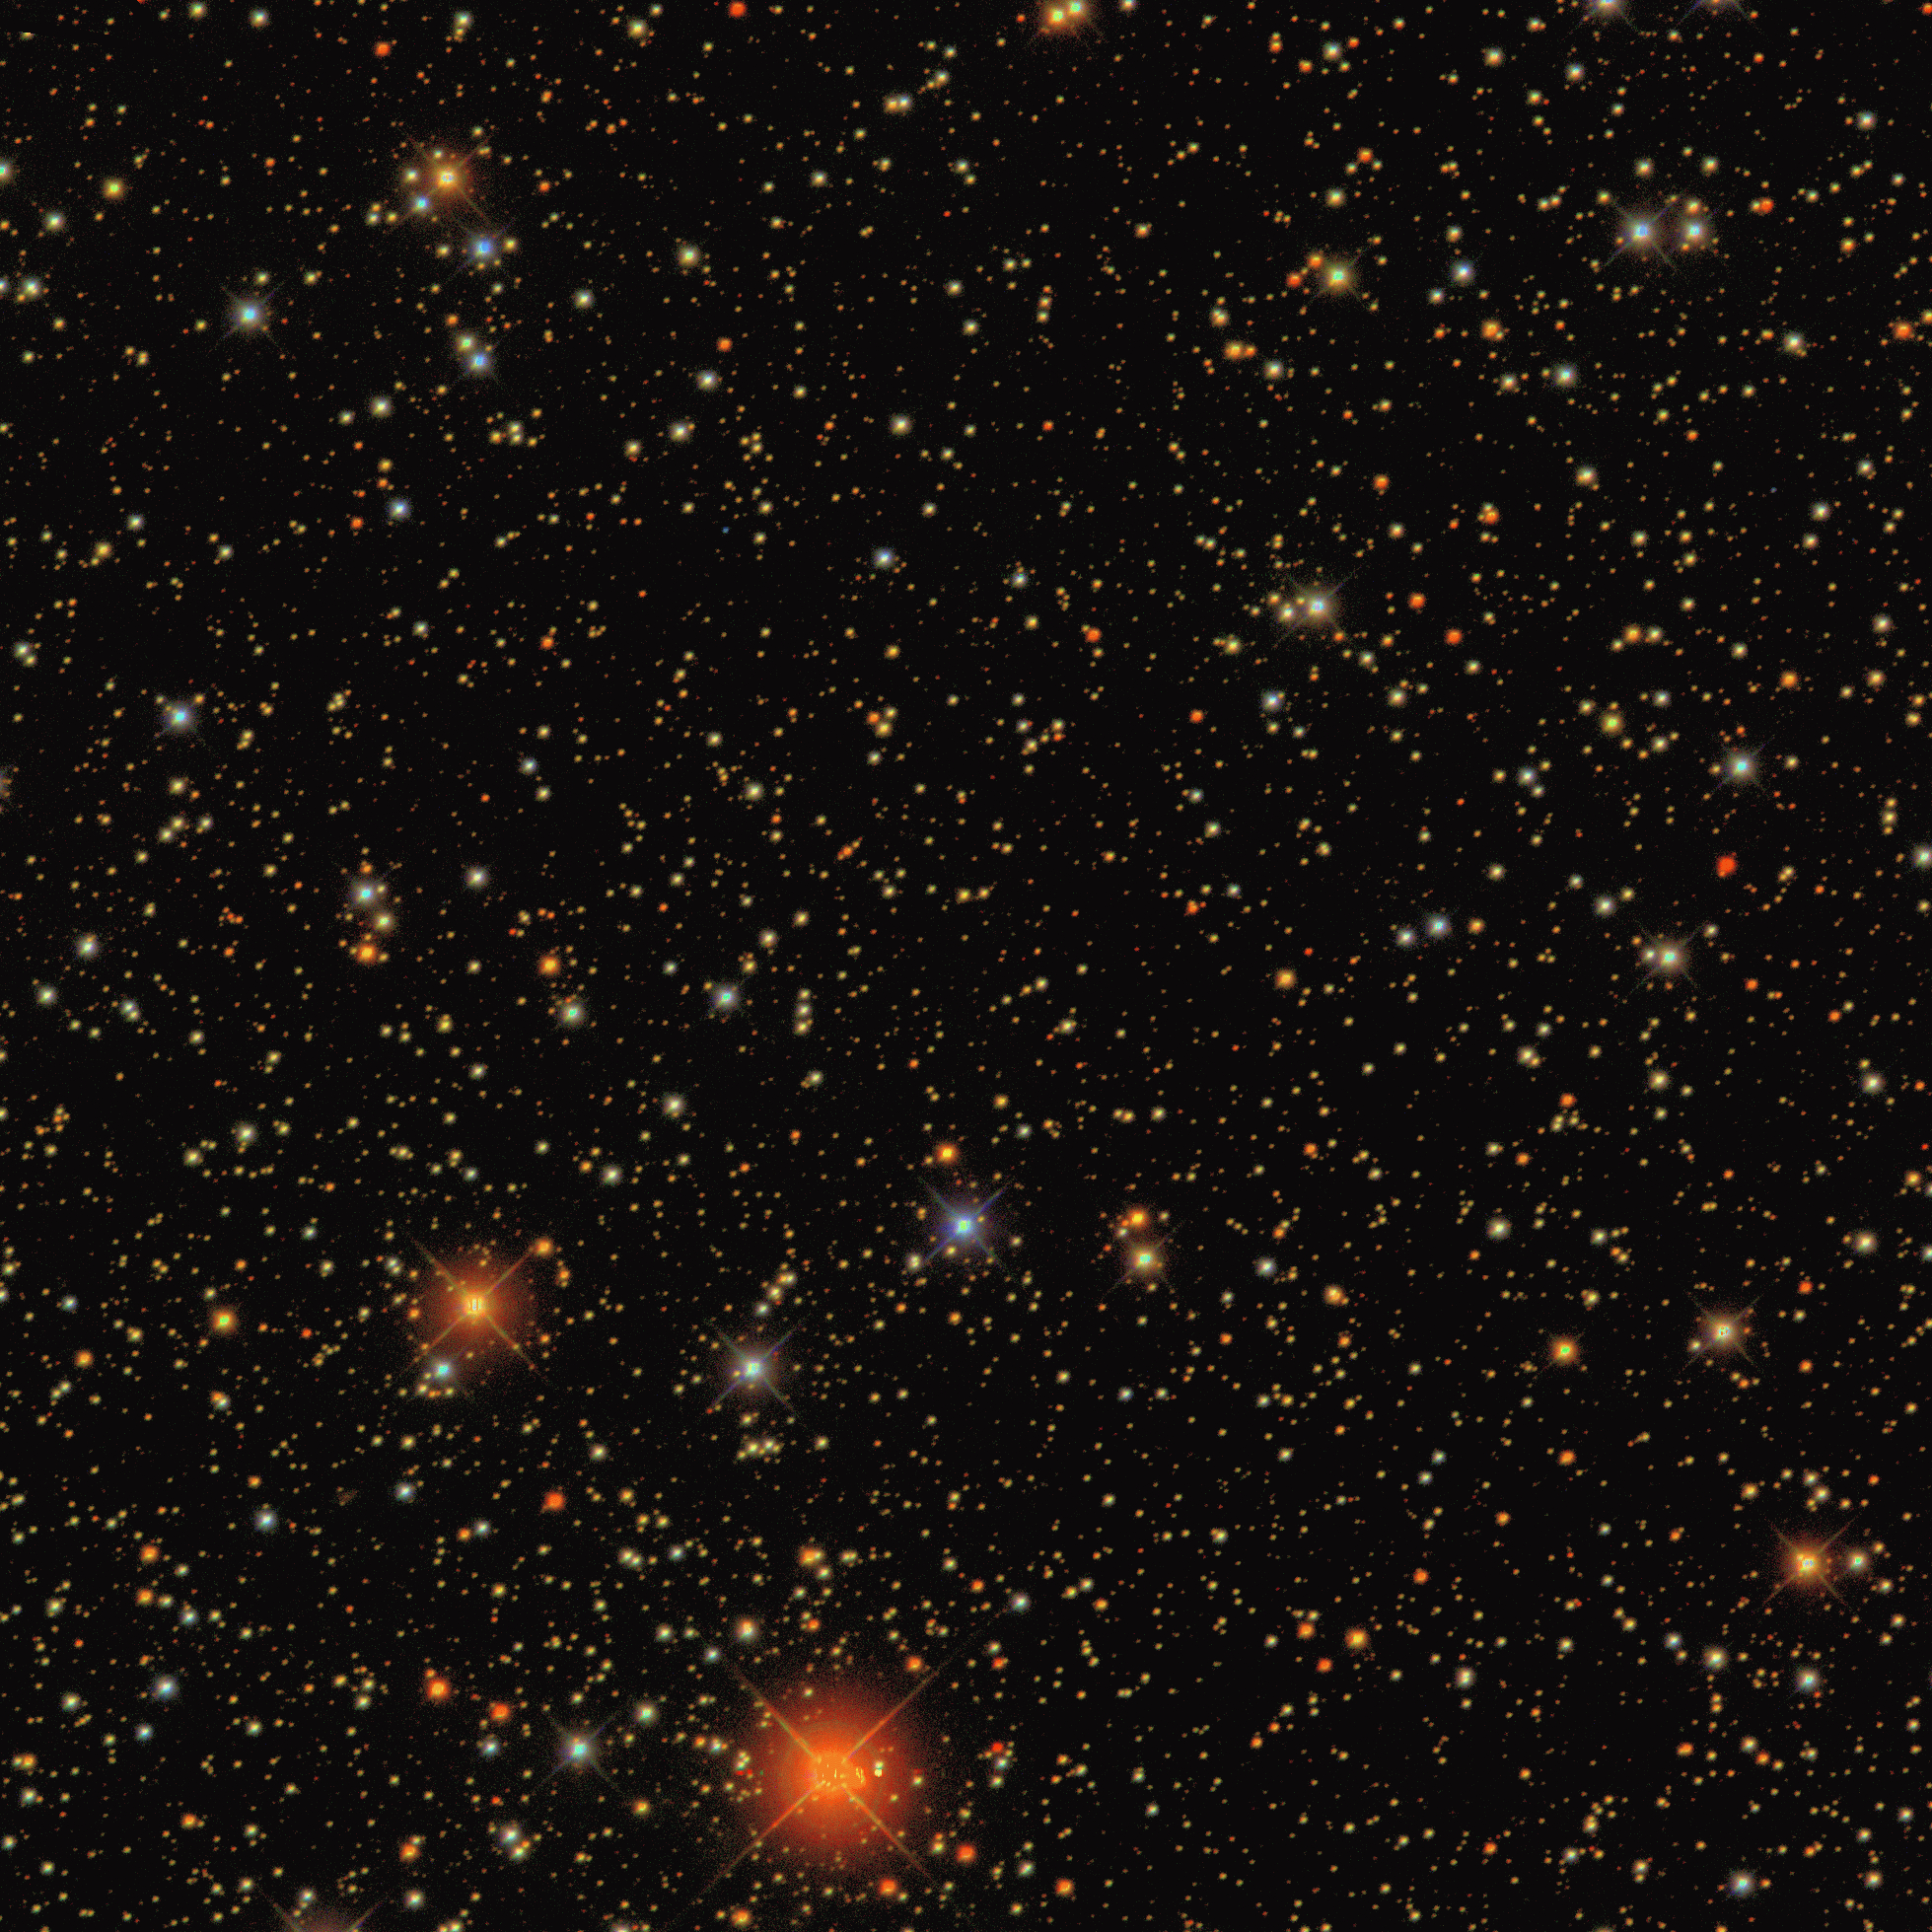 Red dwarf stars tell us how planets form - Sci-Tech news ...